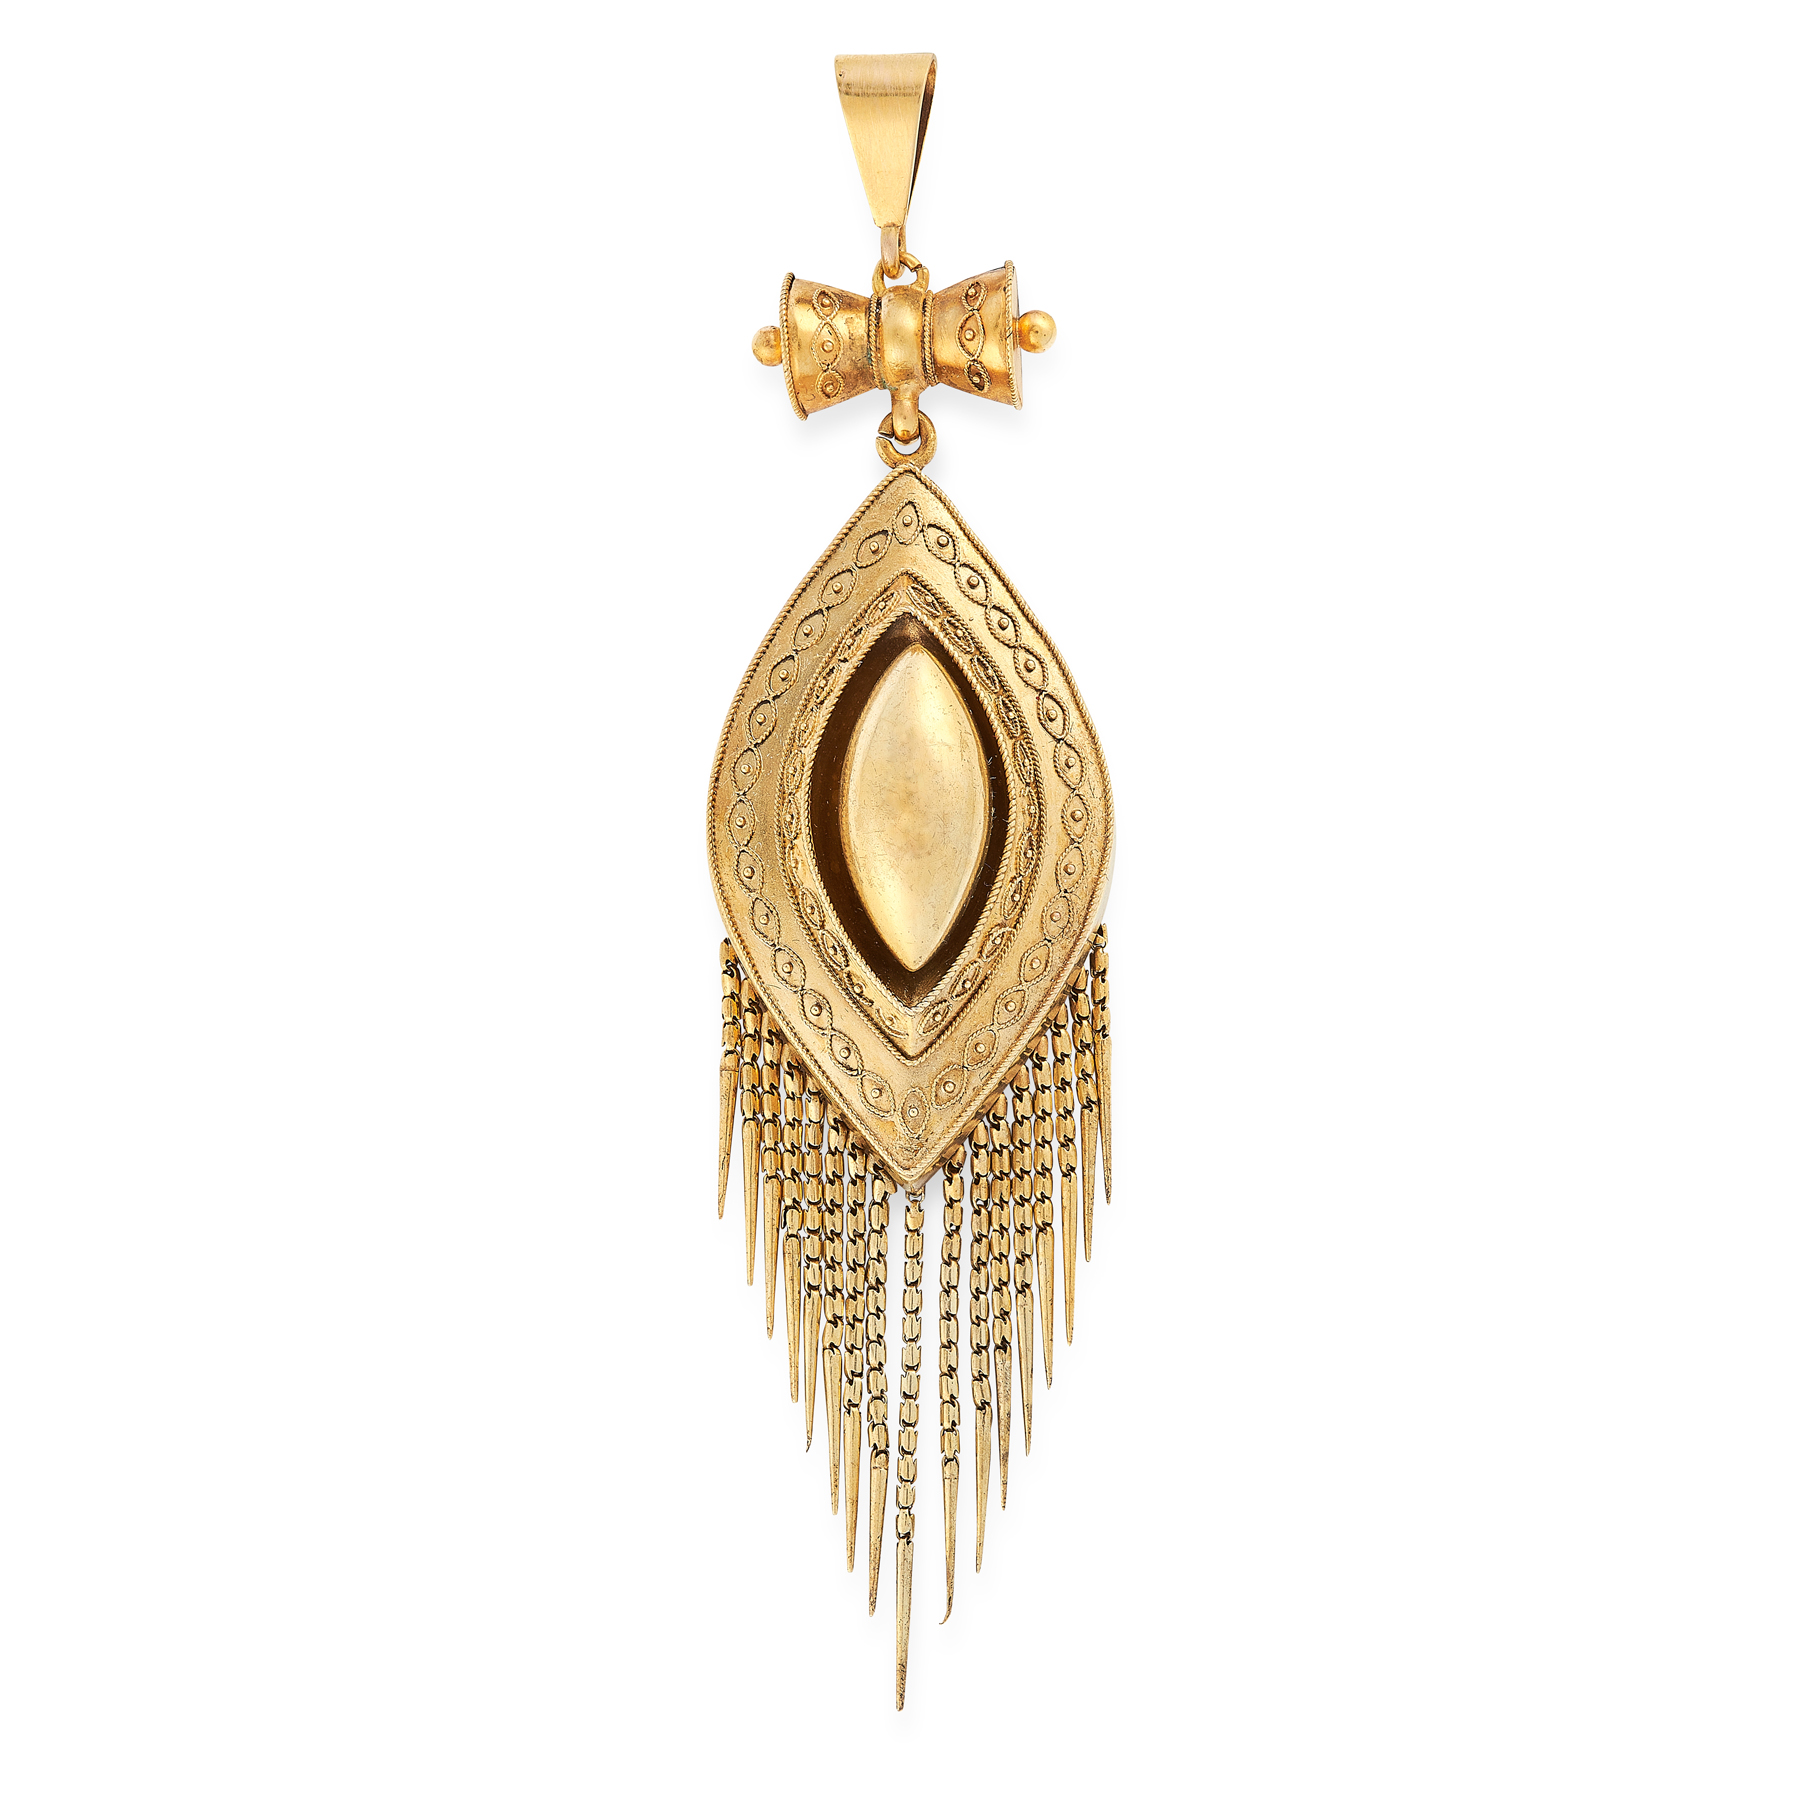 AN ANTIQUE MOURNING LOCKET TASSEL PENDANT, 19TH CENTURY in yellow gold, the nanette body decorated